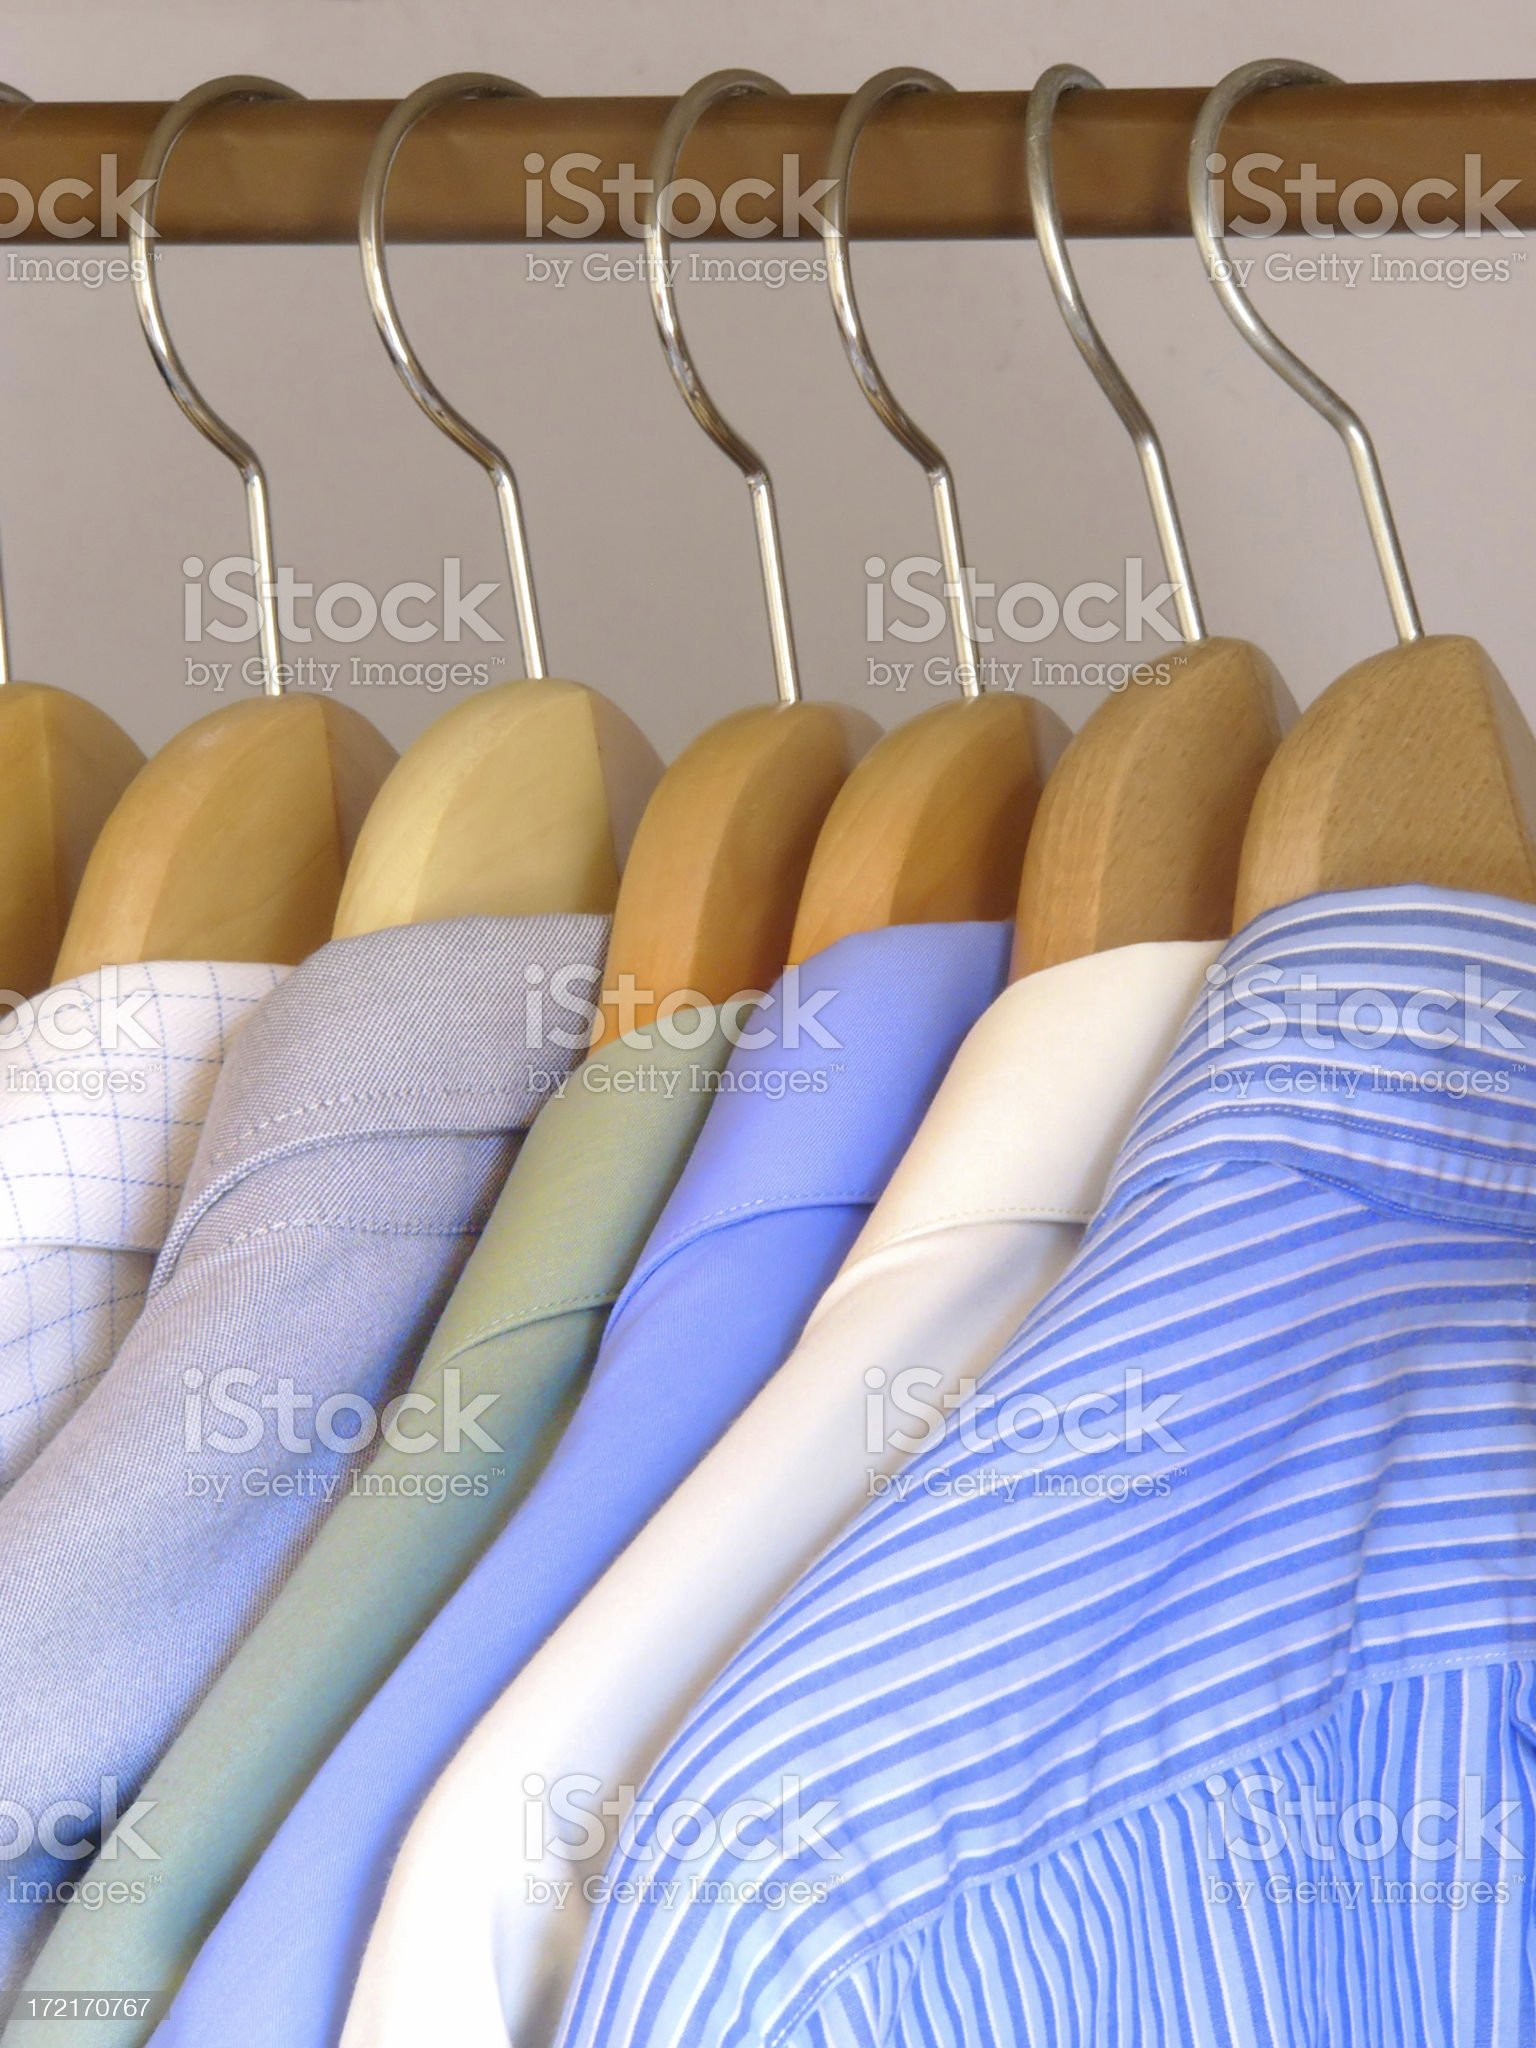 Clothes.Shirts. royalty-free stock photo